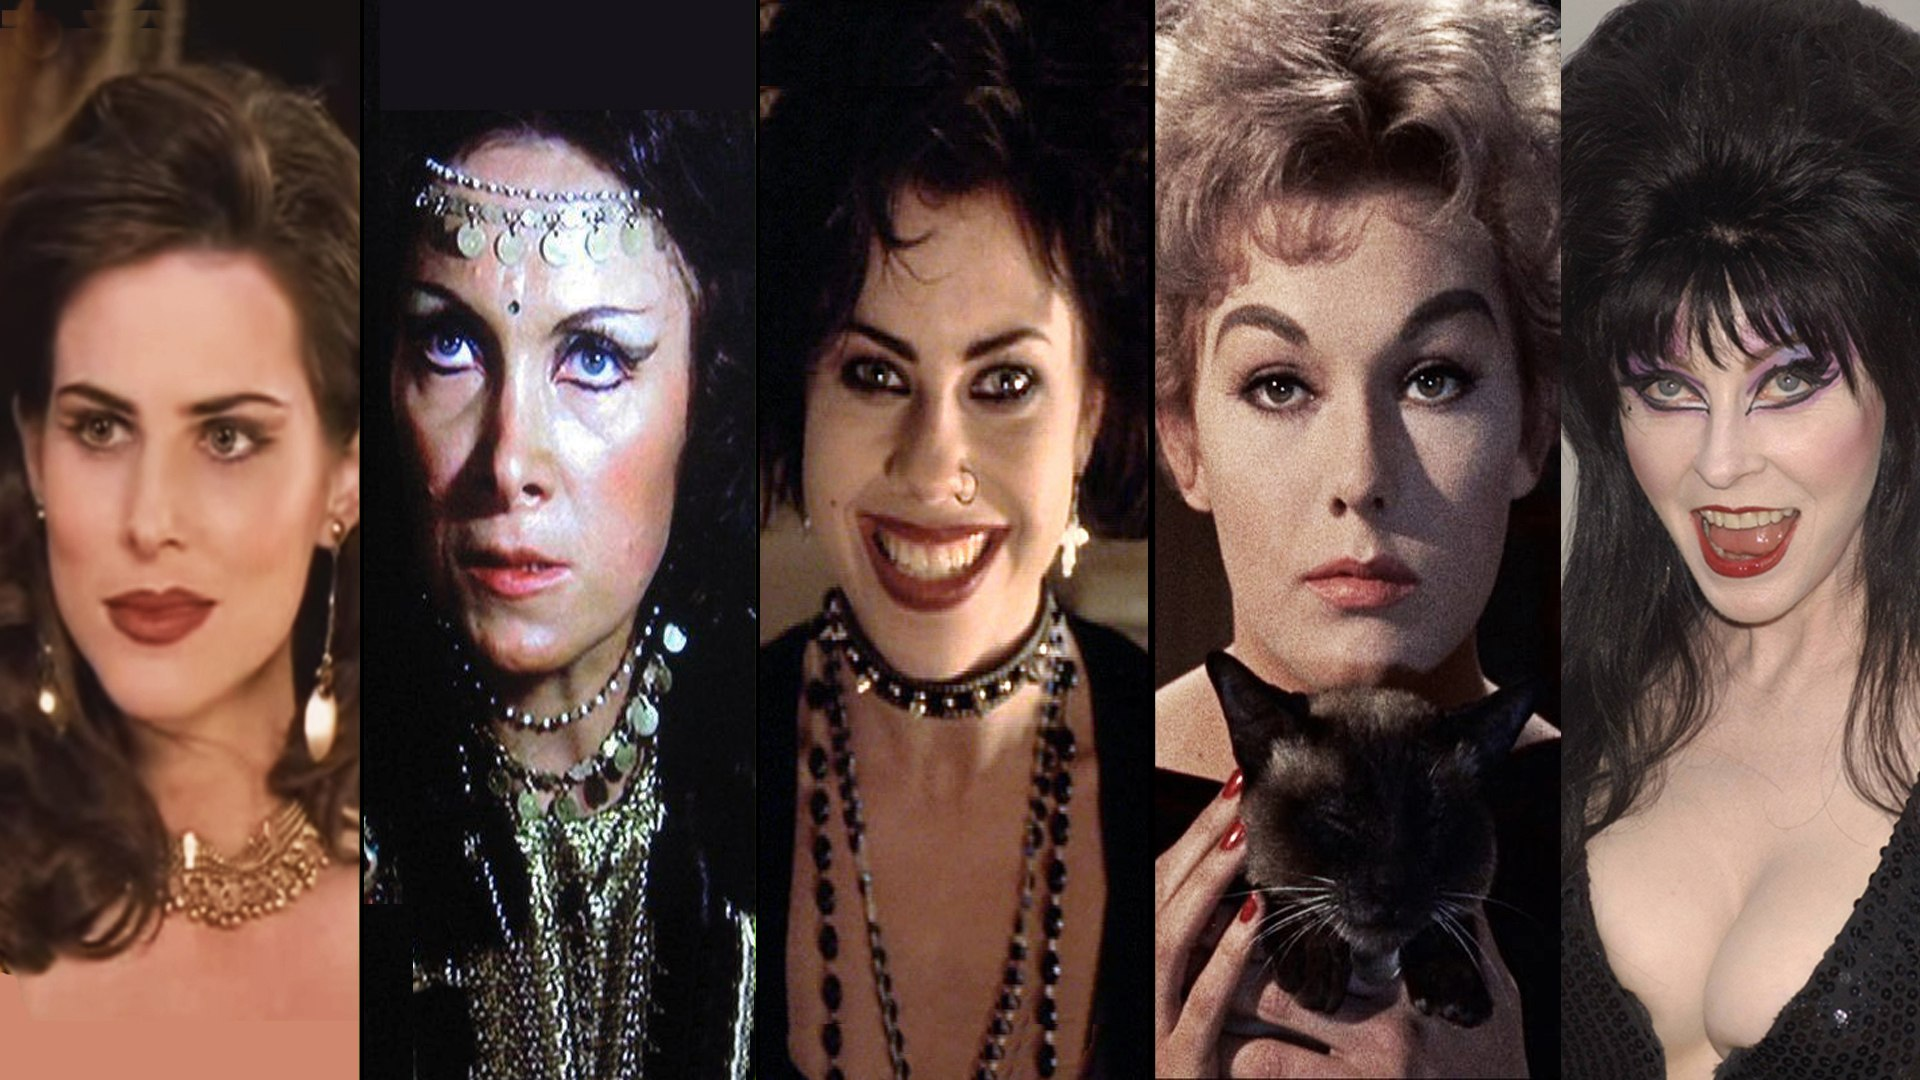 Witches in movies and TV